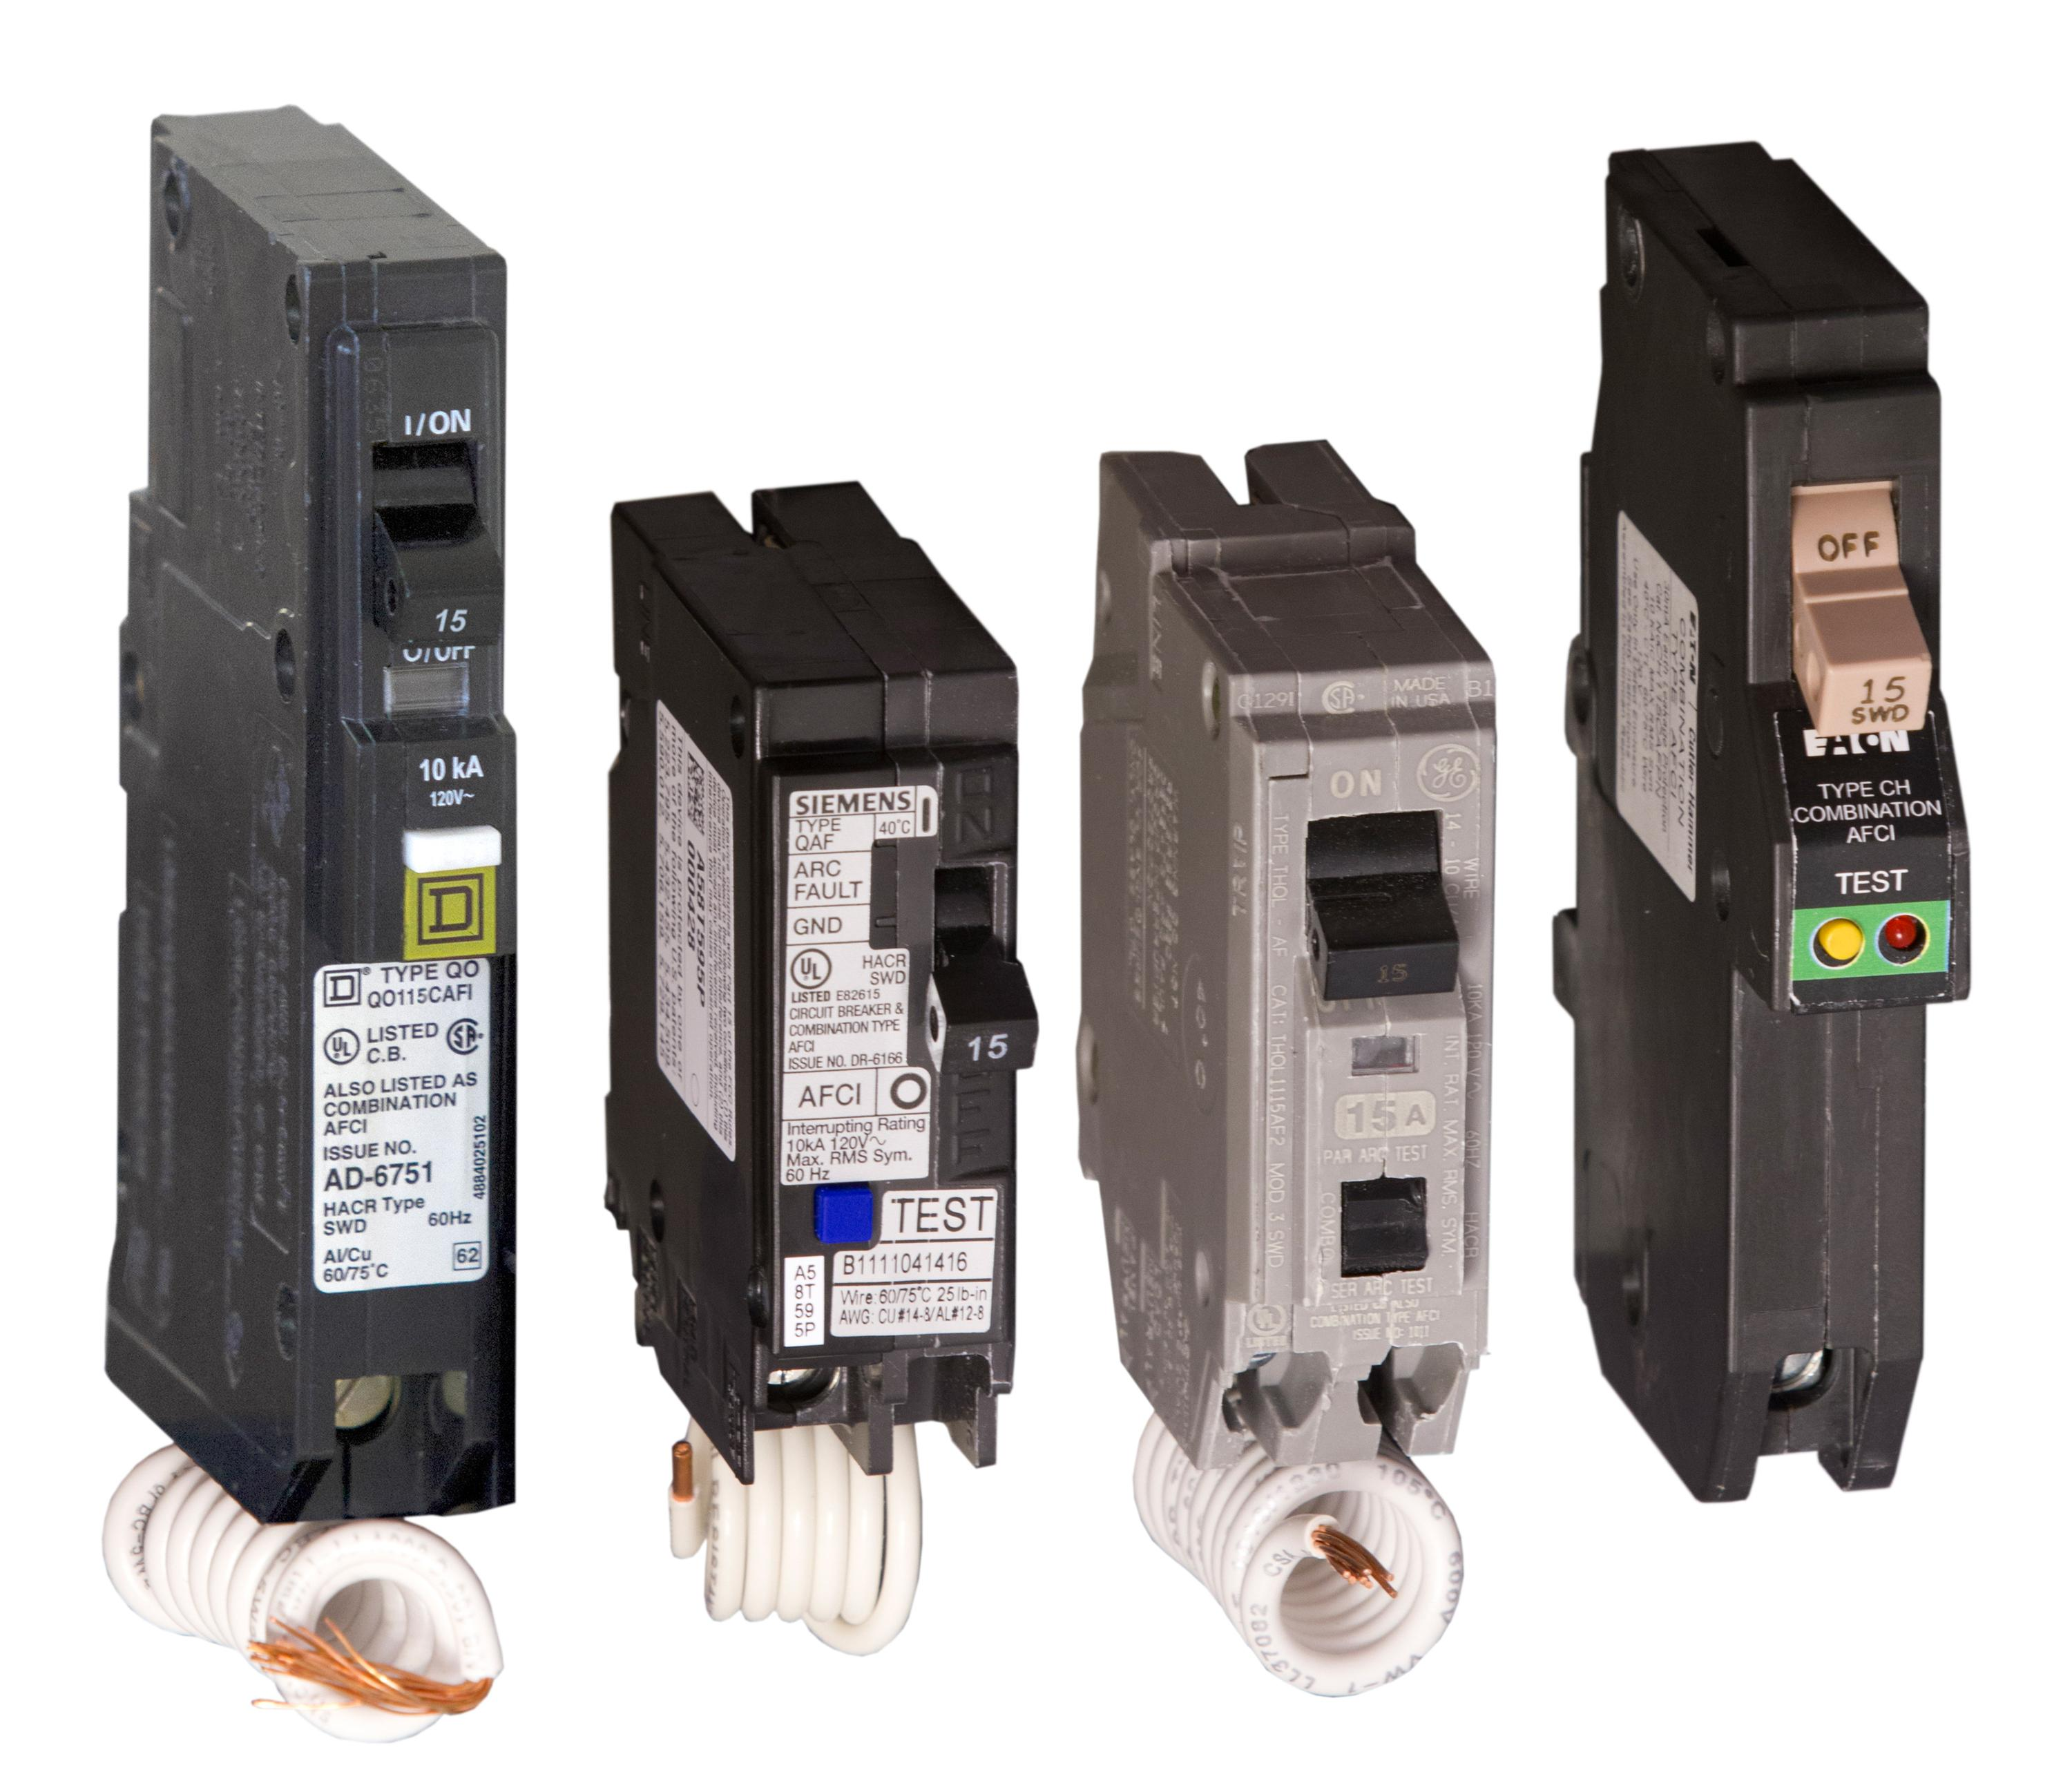 Afci Breakers Electrical Safety Services Philadelphia Pa Ground Fault Circuit Interrupter Outlet This Type Of